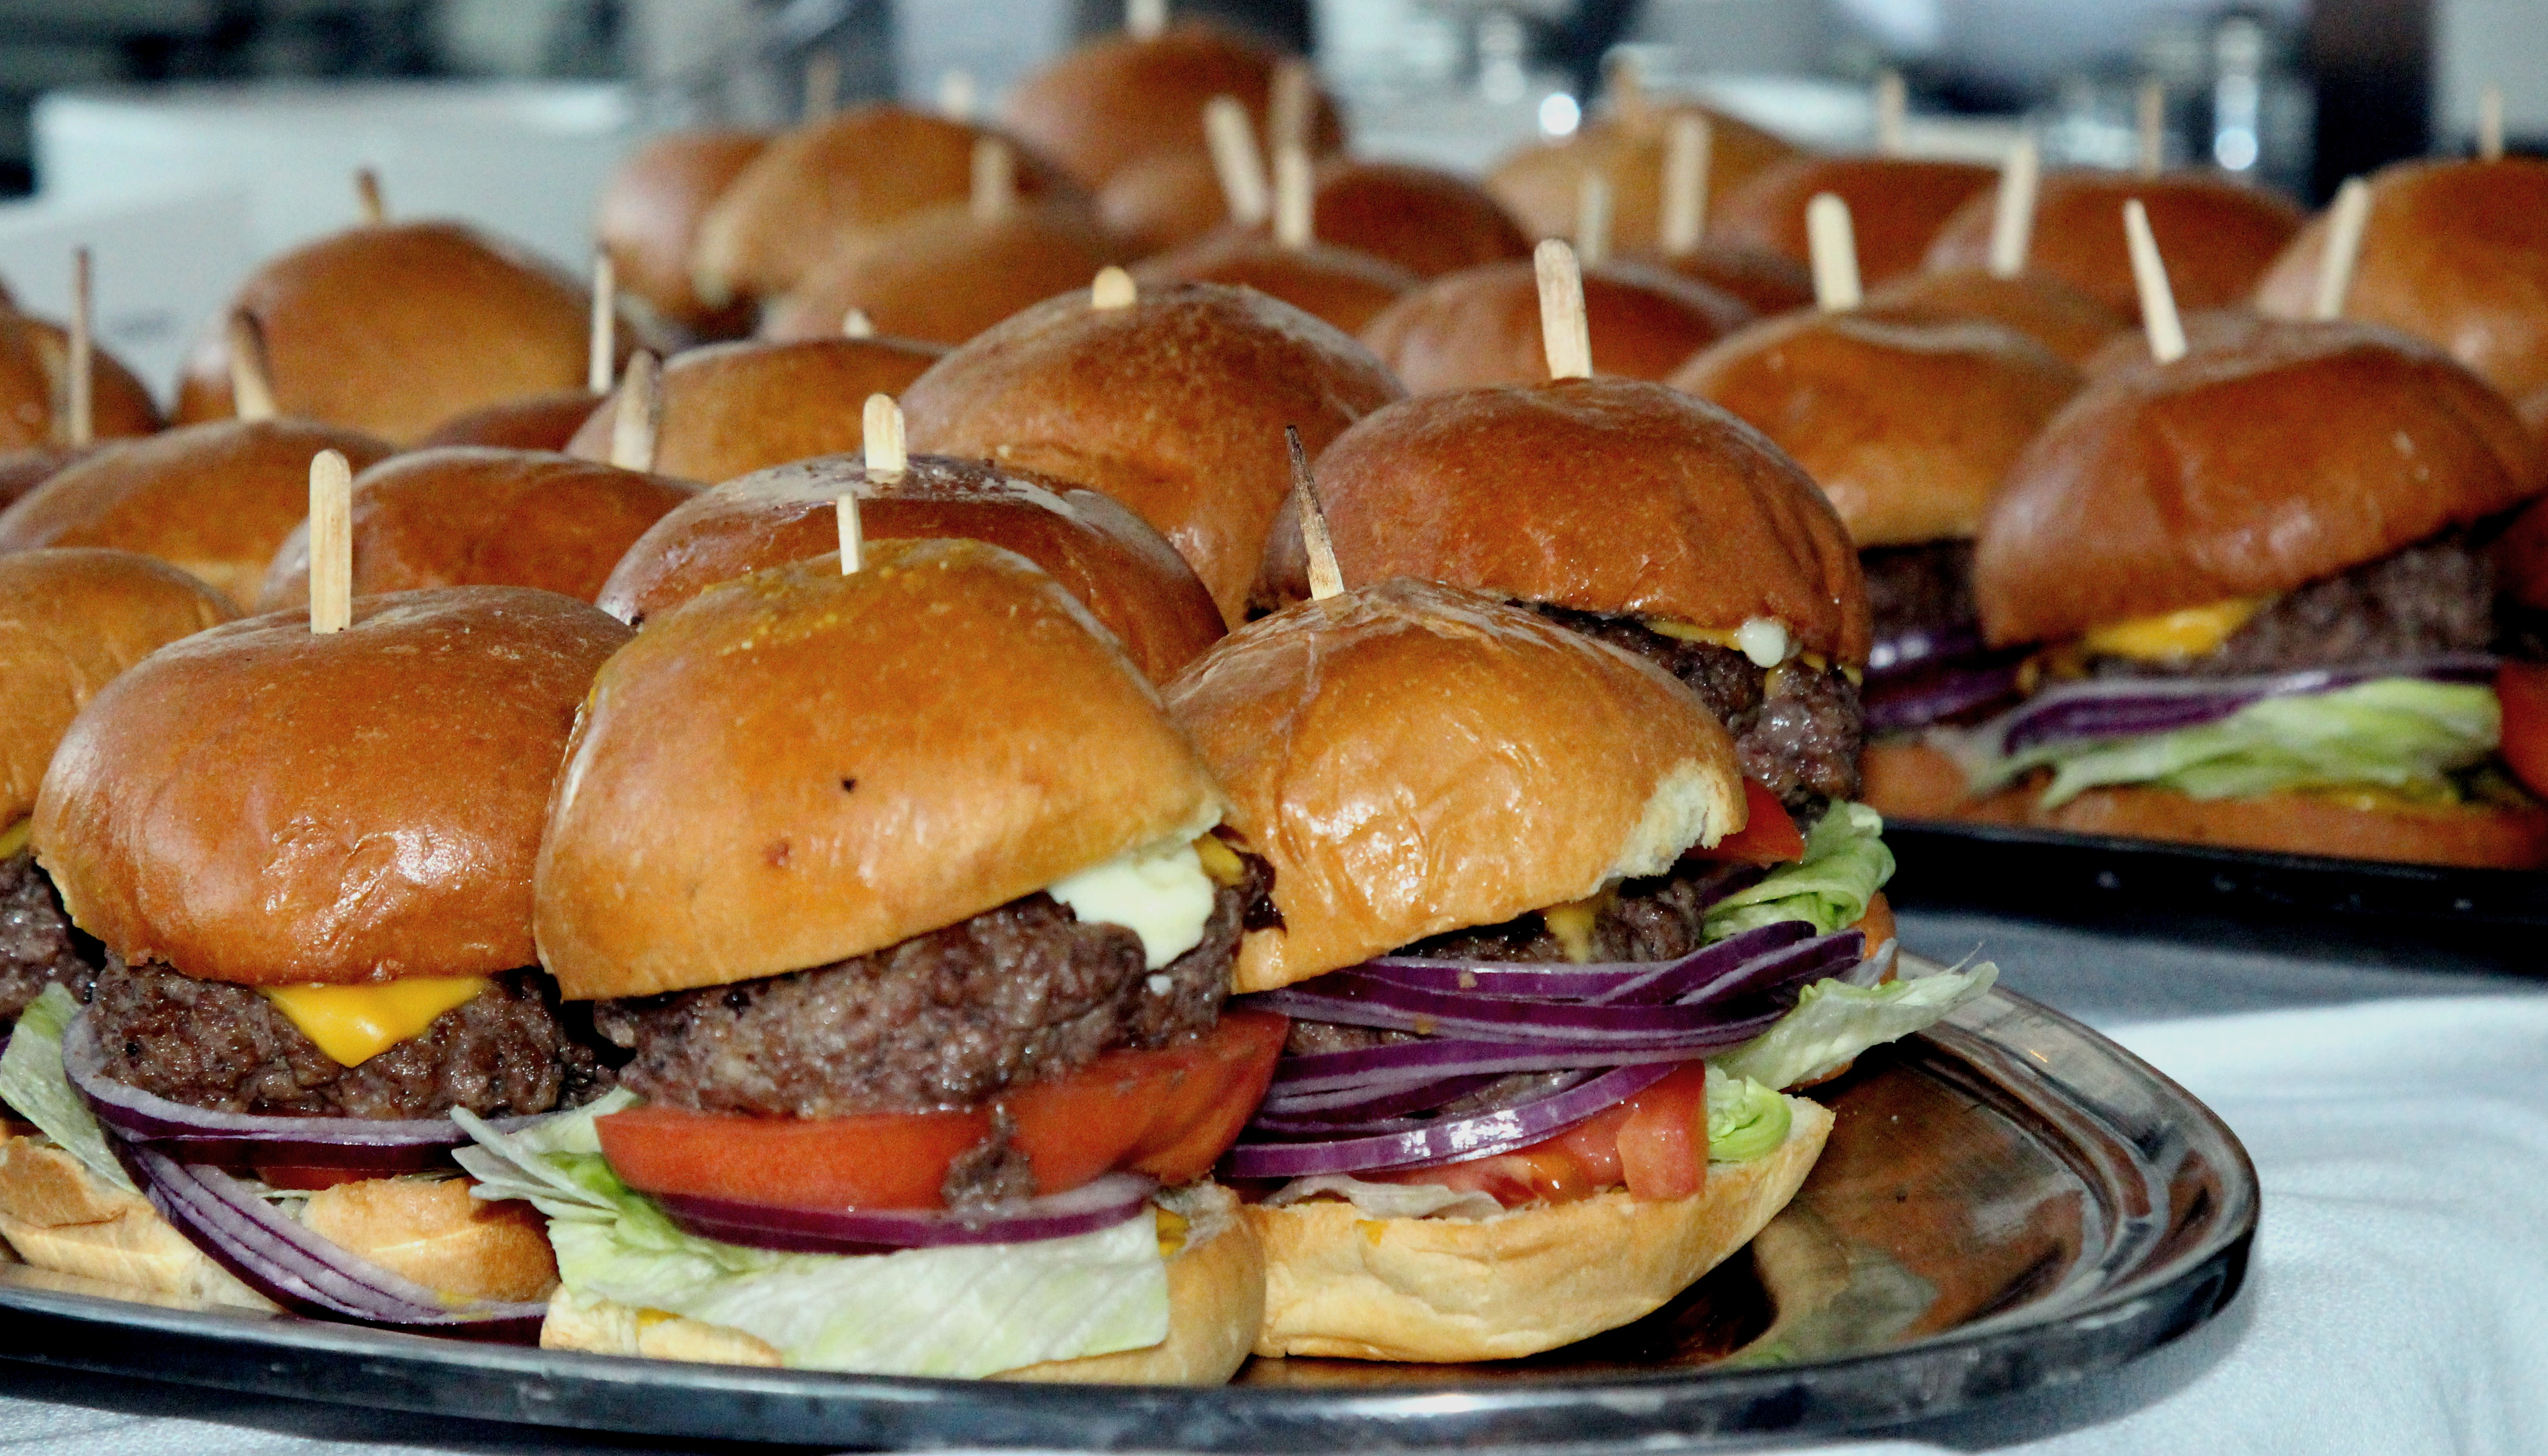 A_party_tray_of_sliders_at_a_restaurant.jpg?width=300